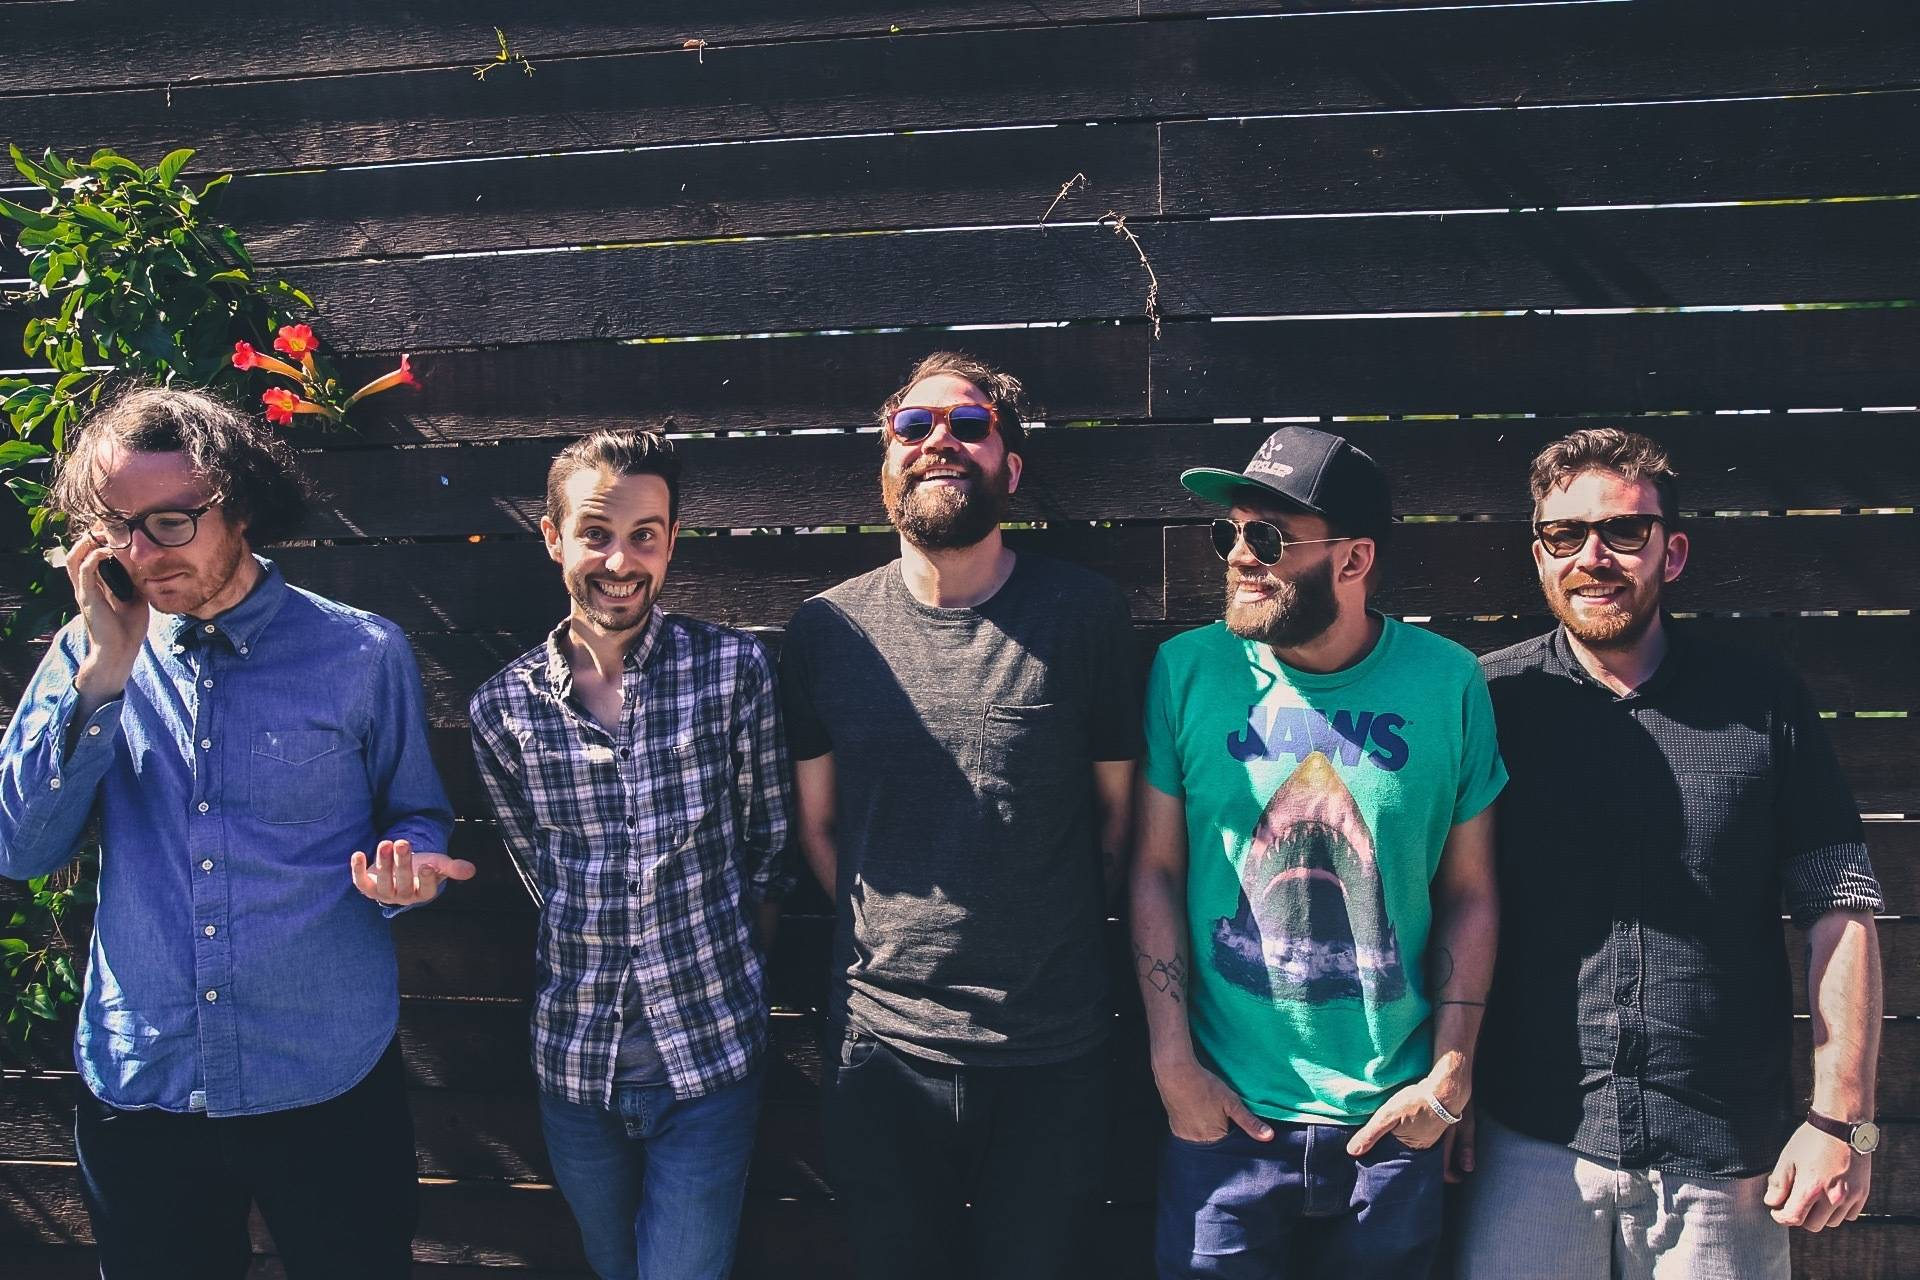 TAKE AN INTIMATE TRIP BACKSTAGE WITH FRIGHTENED RABBIT